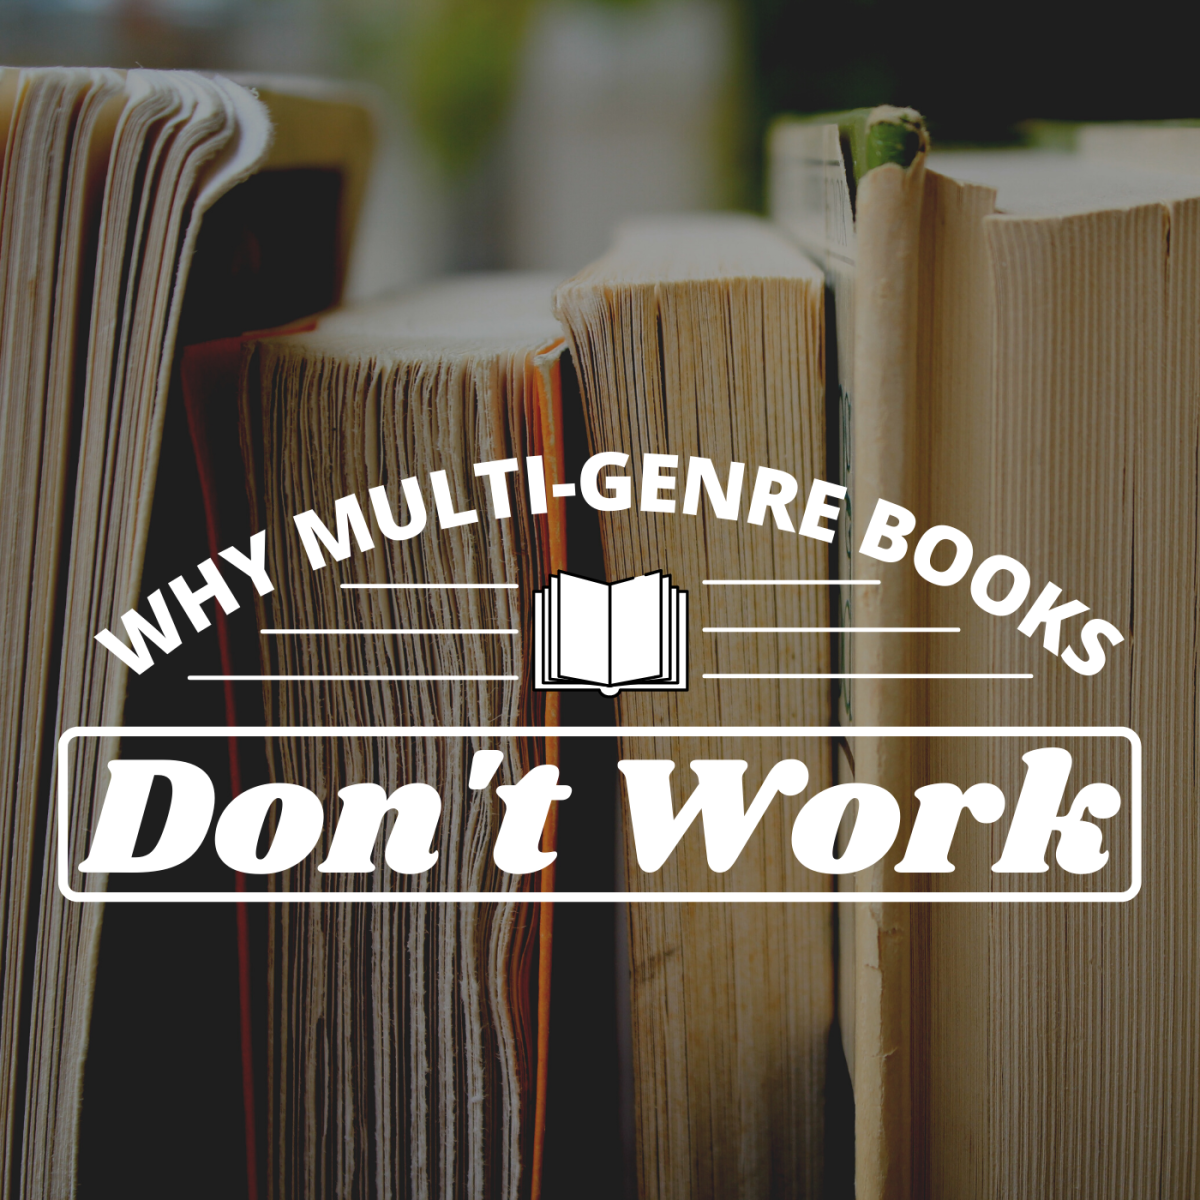 If you're trying to combine two genres, it may be a better idea to simply write two different books.